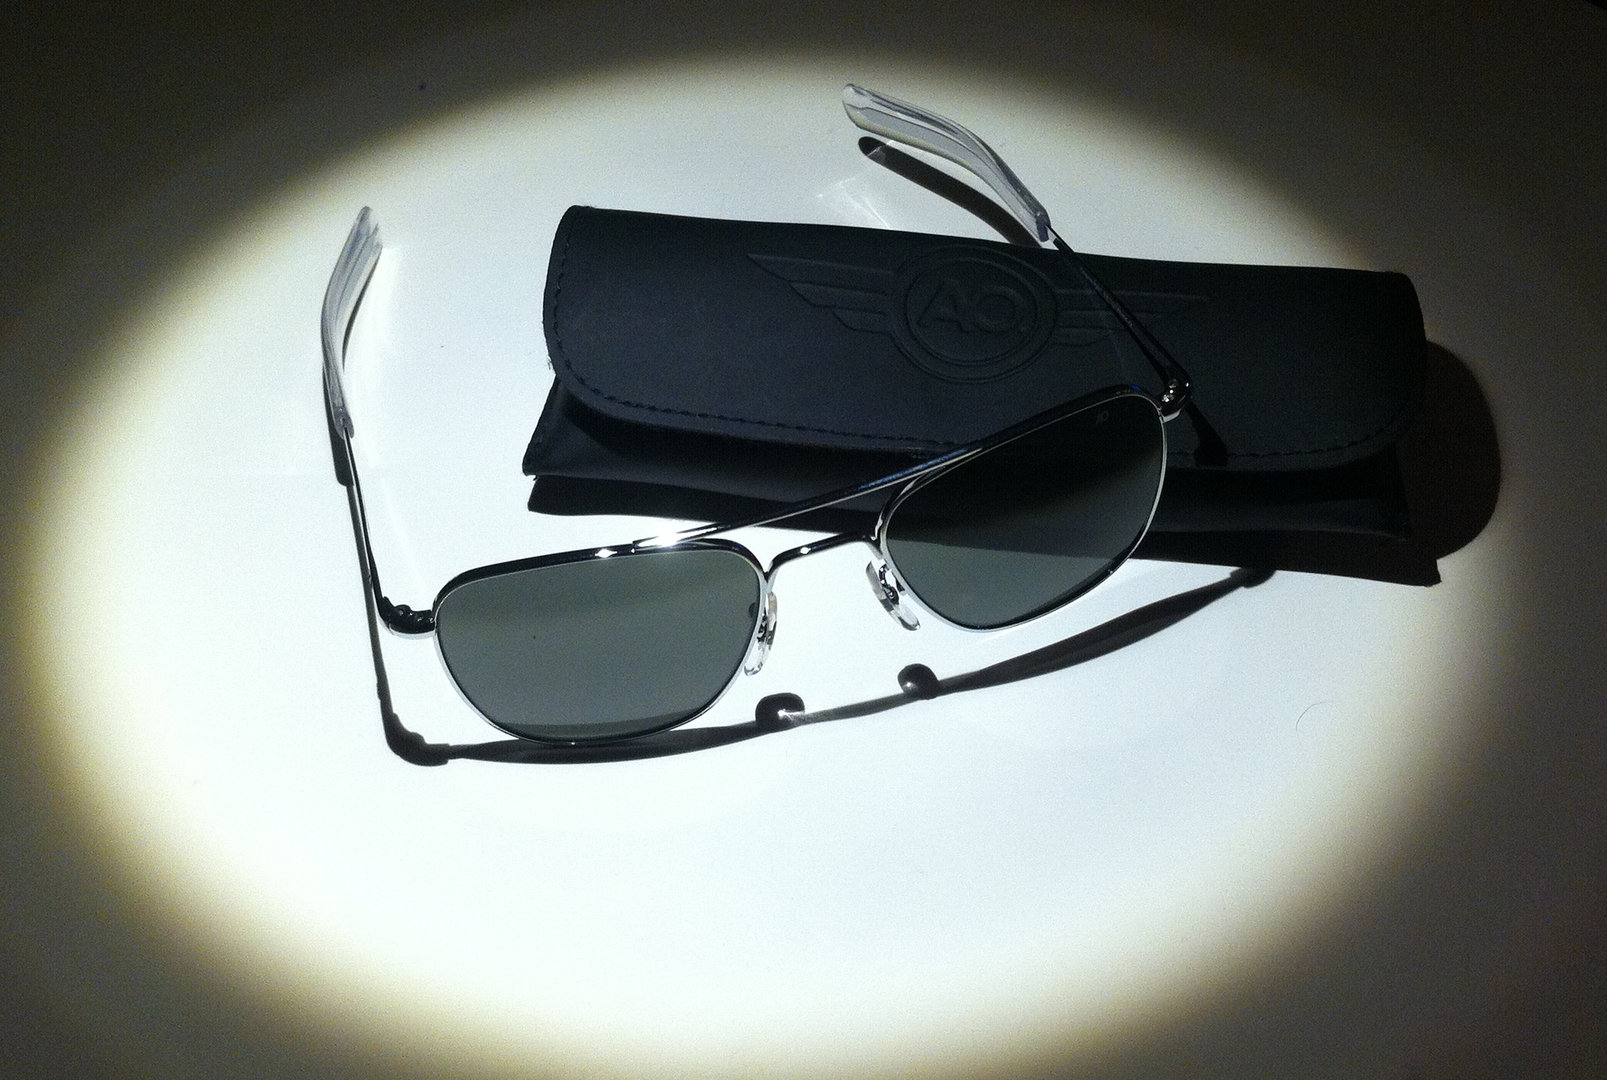 AMERICAN OPTICAL SUNGLASSES SILVER TYPE - DELIVERY FREE TO SPAIN